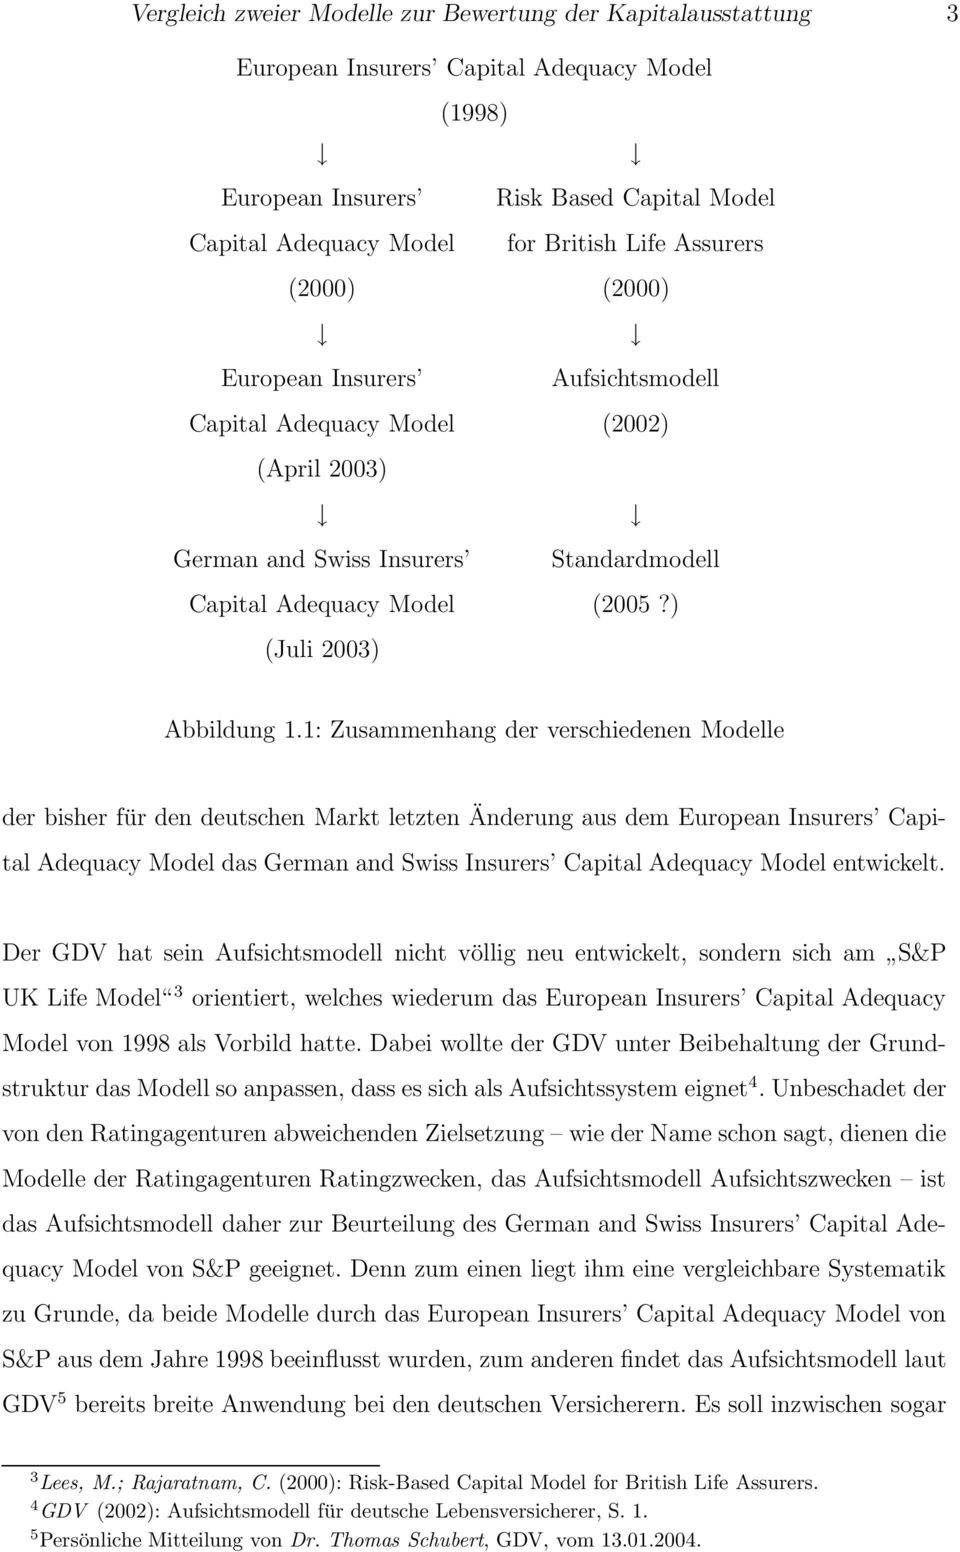 1: Zusammenhang der verschiedenen Modelle der bisher für den deutschen Markt letzten Änderung aus dem European Insurers Capital Adequacy Model das German and Swiss Insurers Capital Adequacy Model